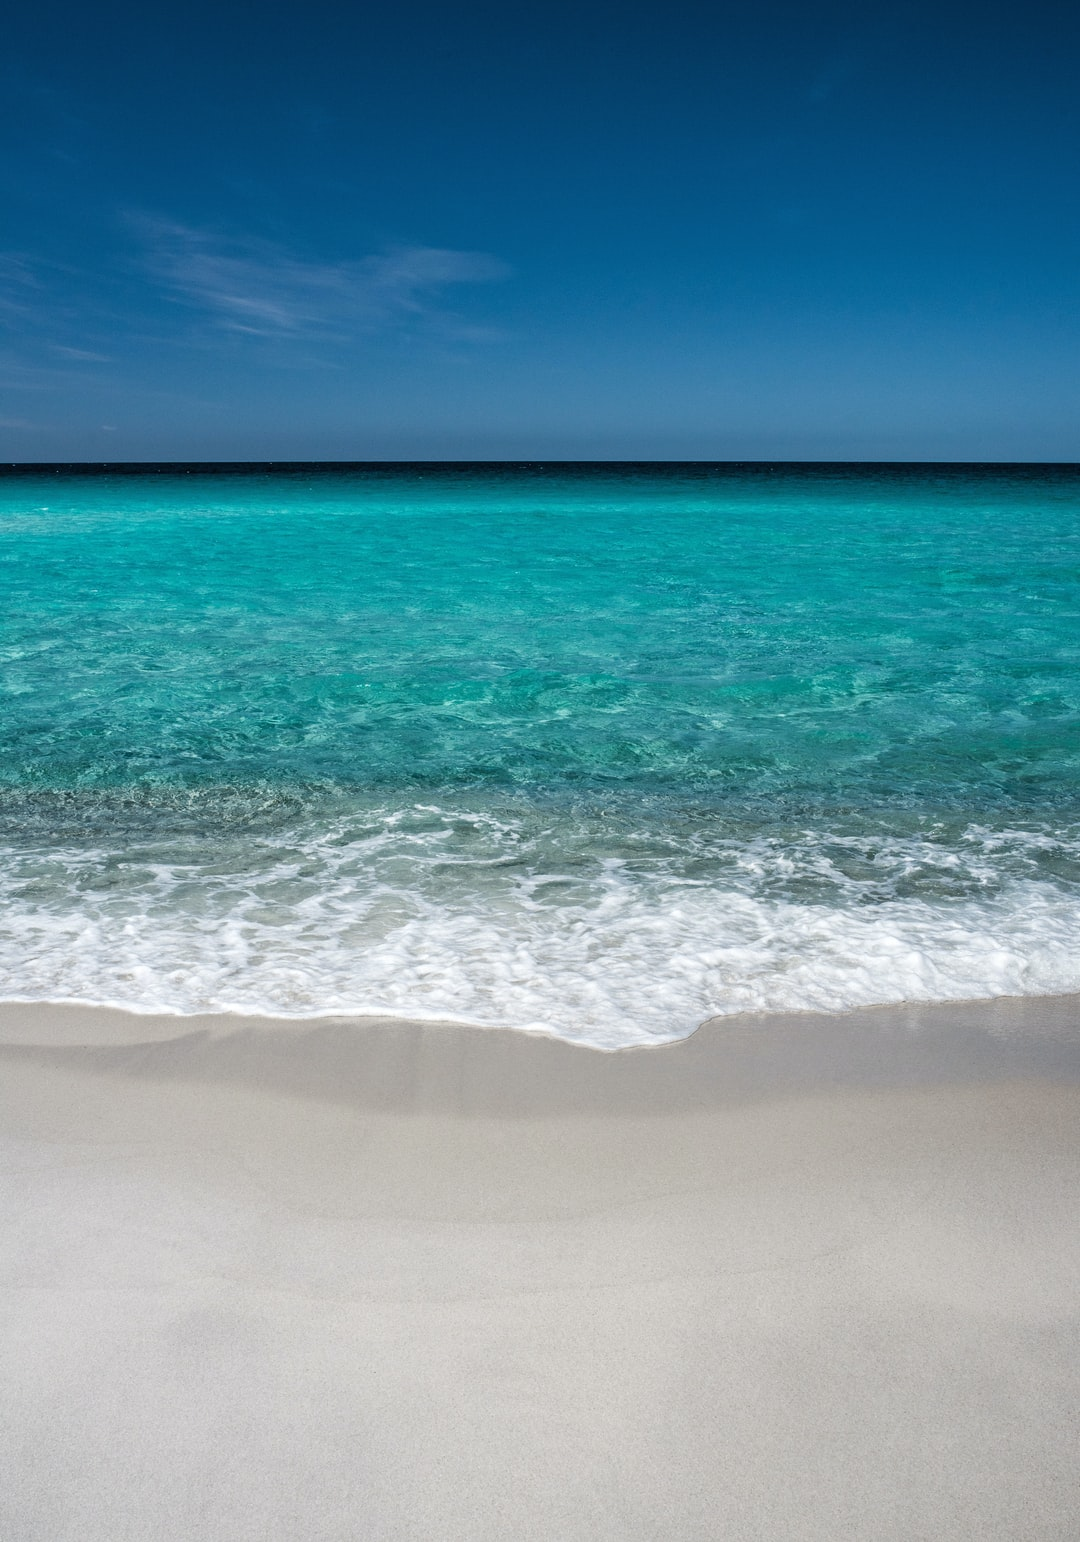 Crystal clear water and a pristine beach at Cosy Corner South Beach in Tasmania, Australia.